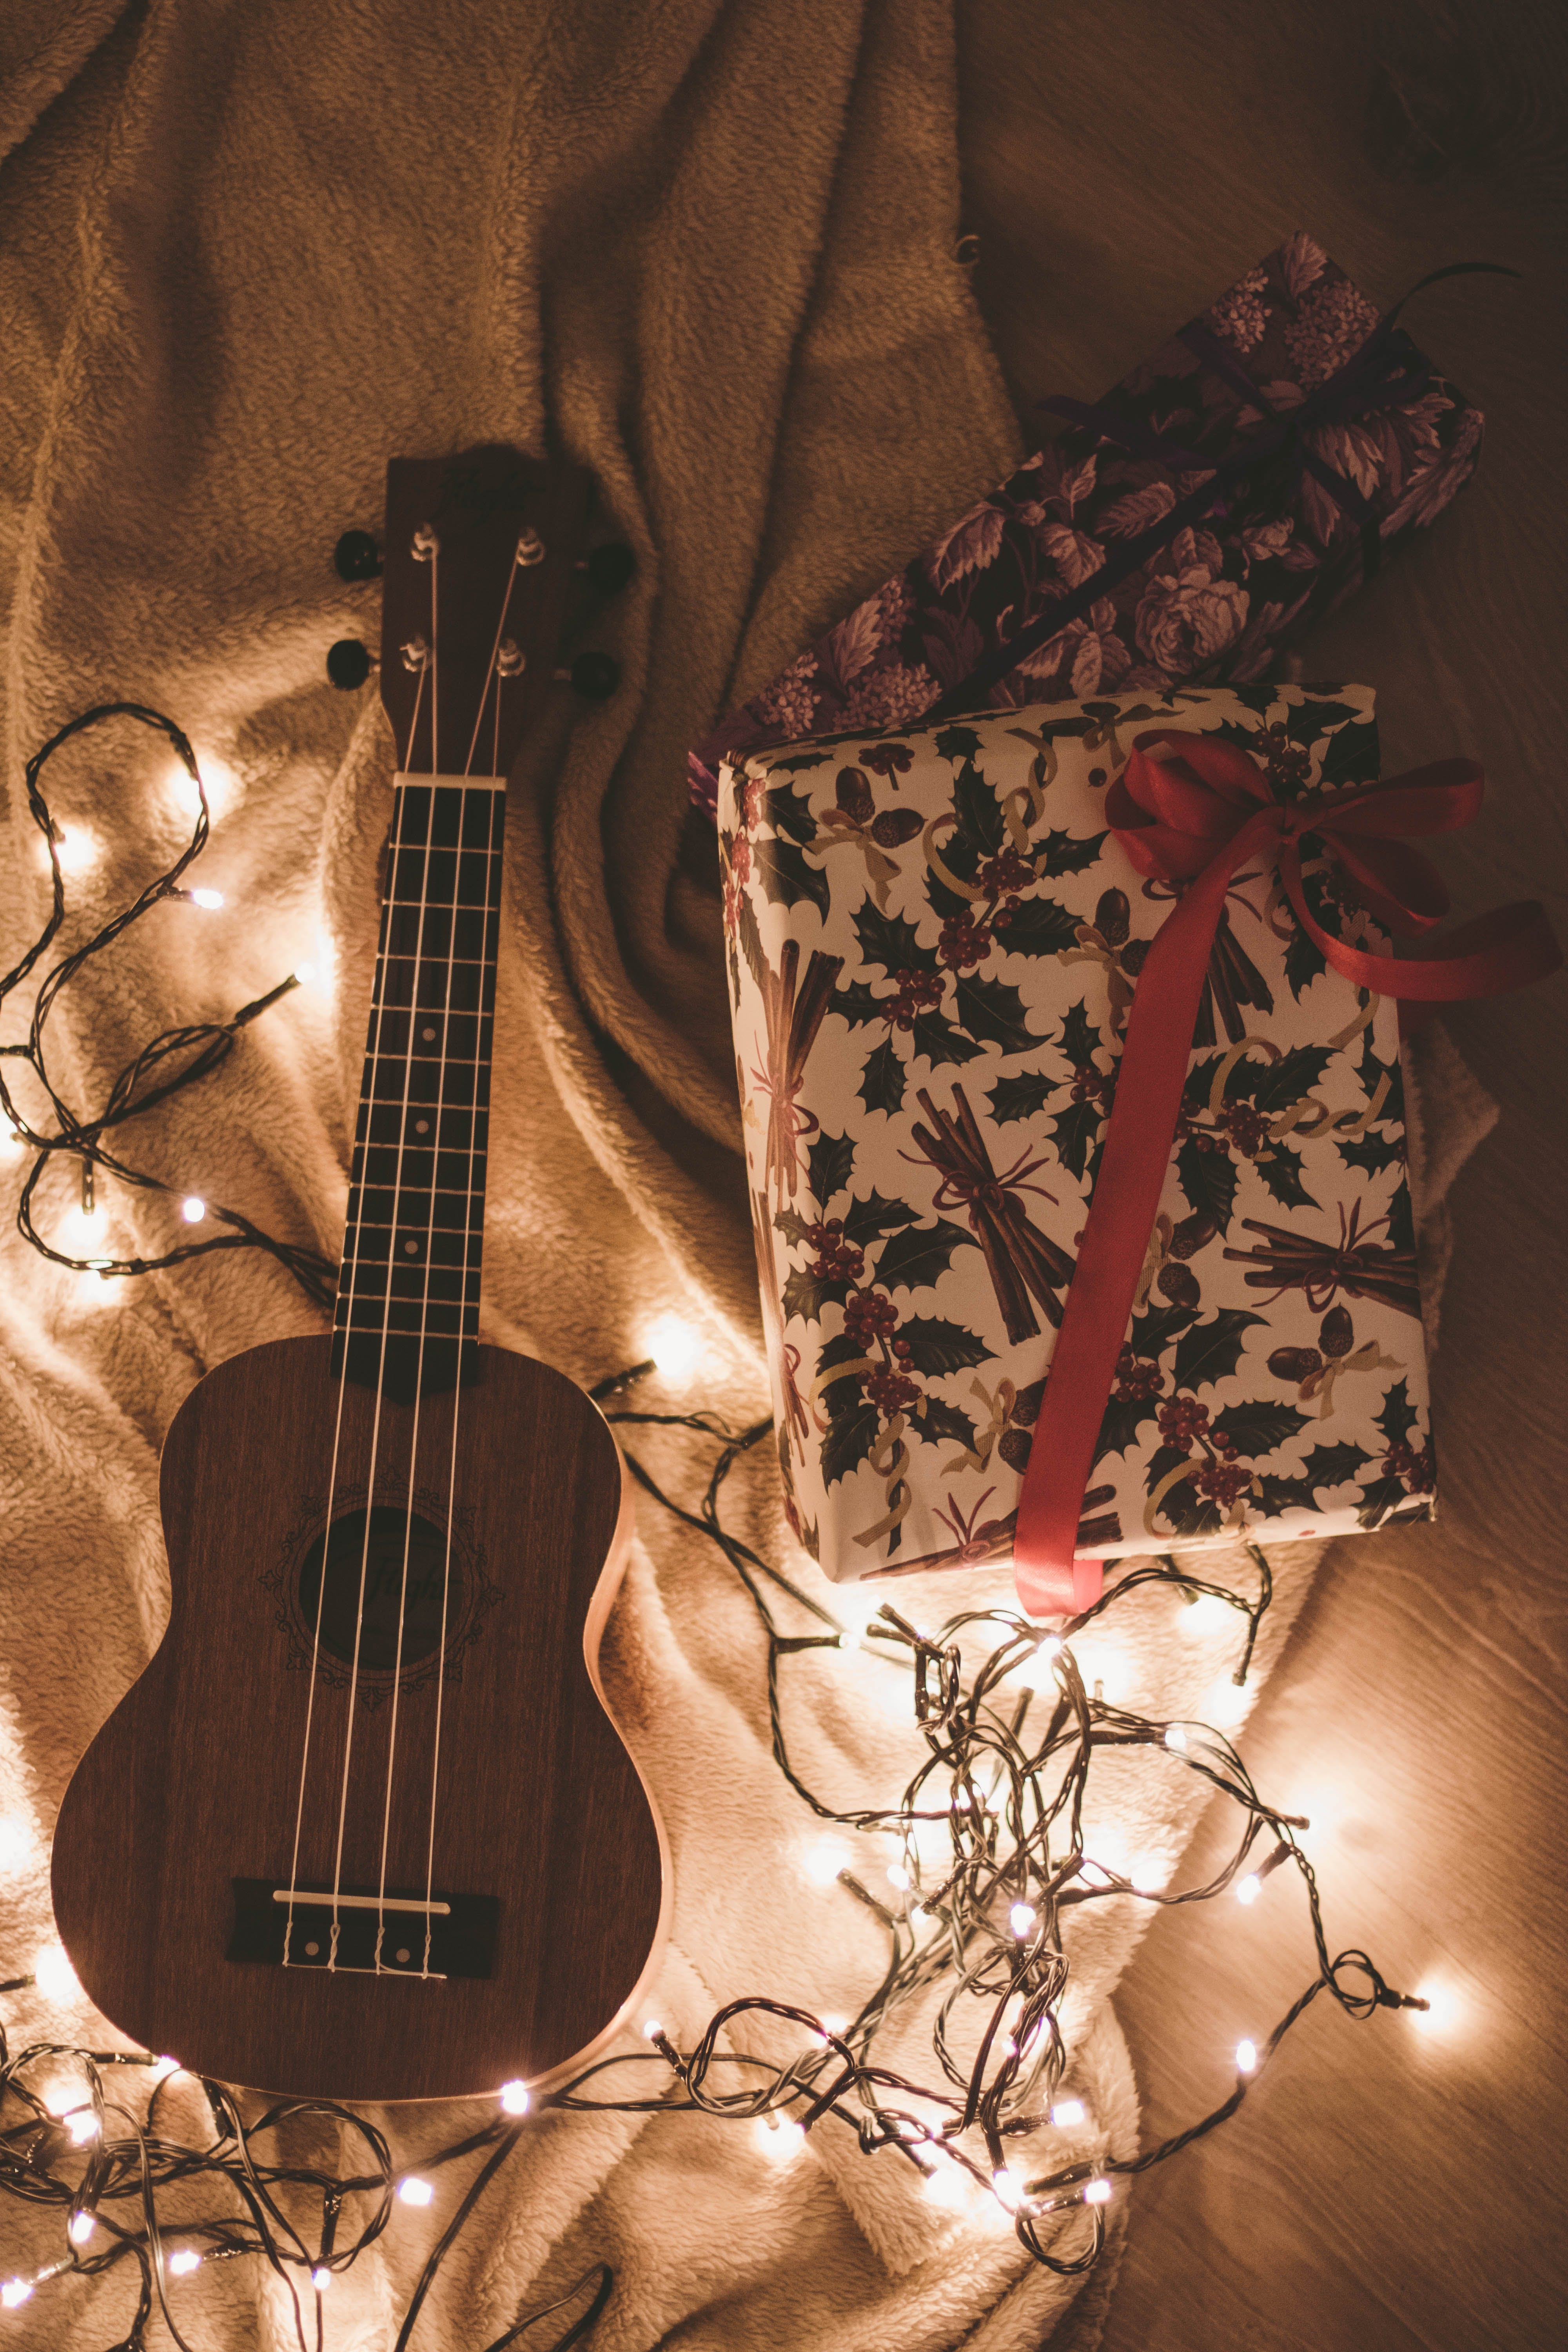 Ukulele Beside a Floral Box and String Lights